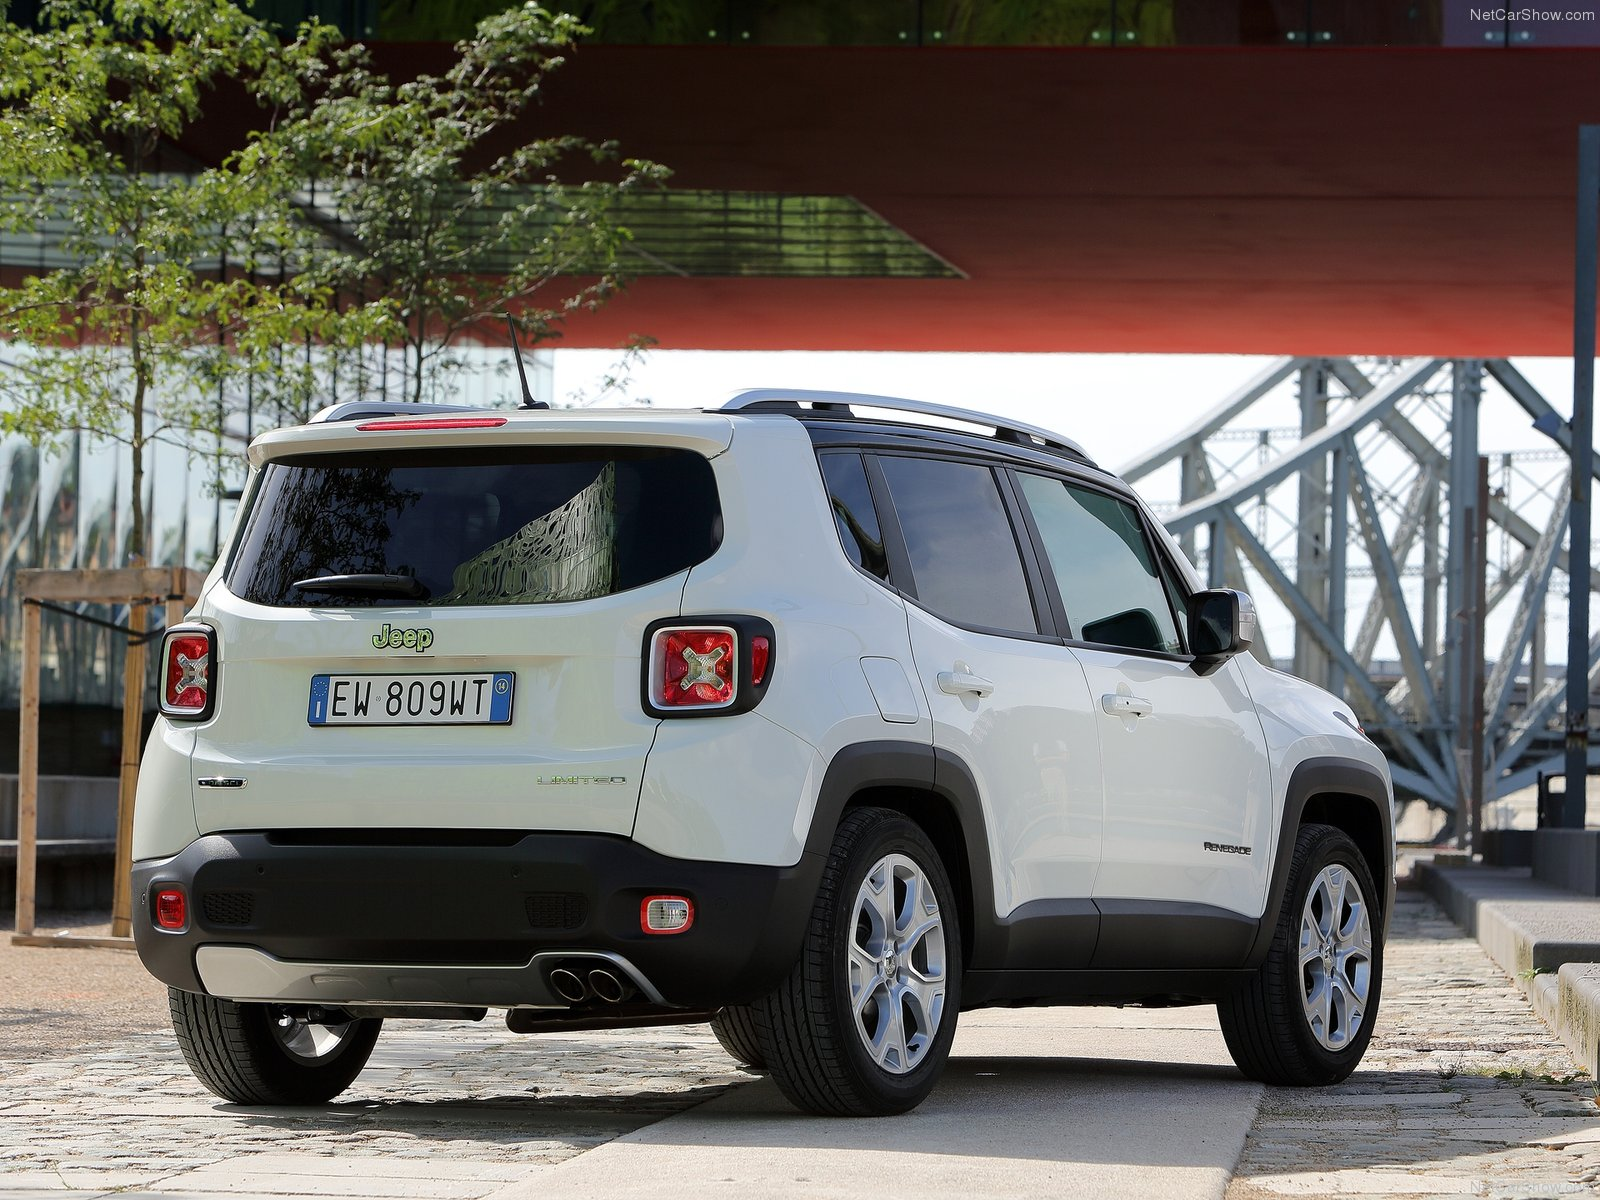 Jeep Models 2015 >> 3DTuning of Jeep Renegade SUV 2015 3DTuning.com - unique on-line car configurator for more than ...